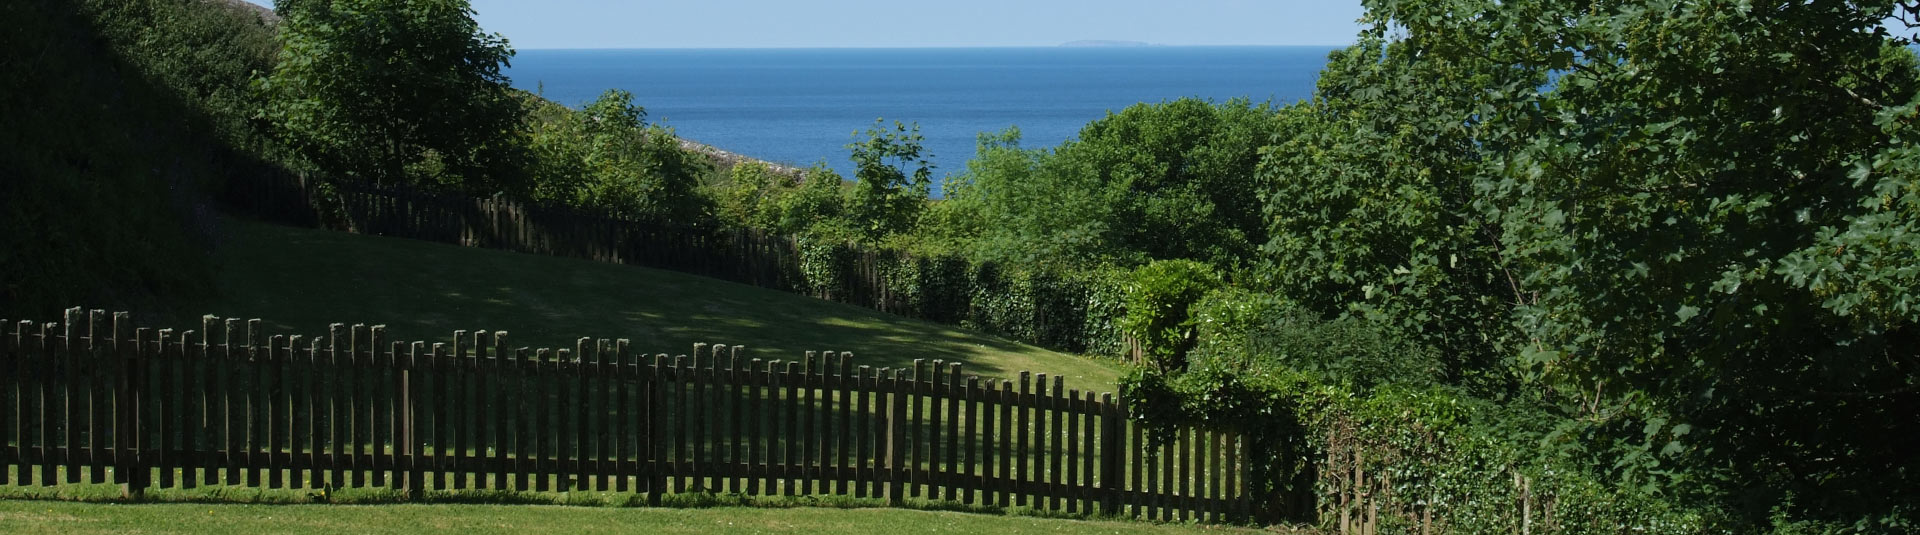 Holiday cottages with enclosed gardens in The West Country